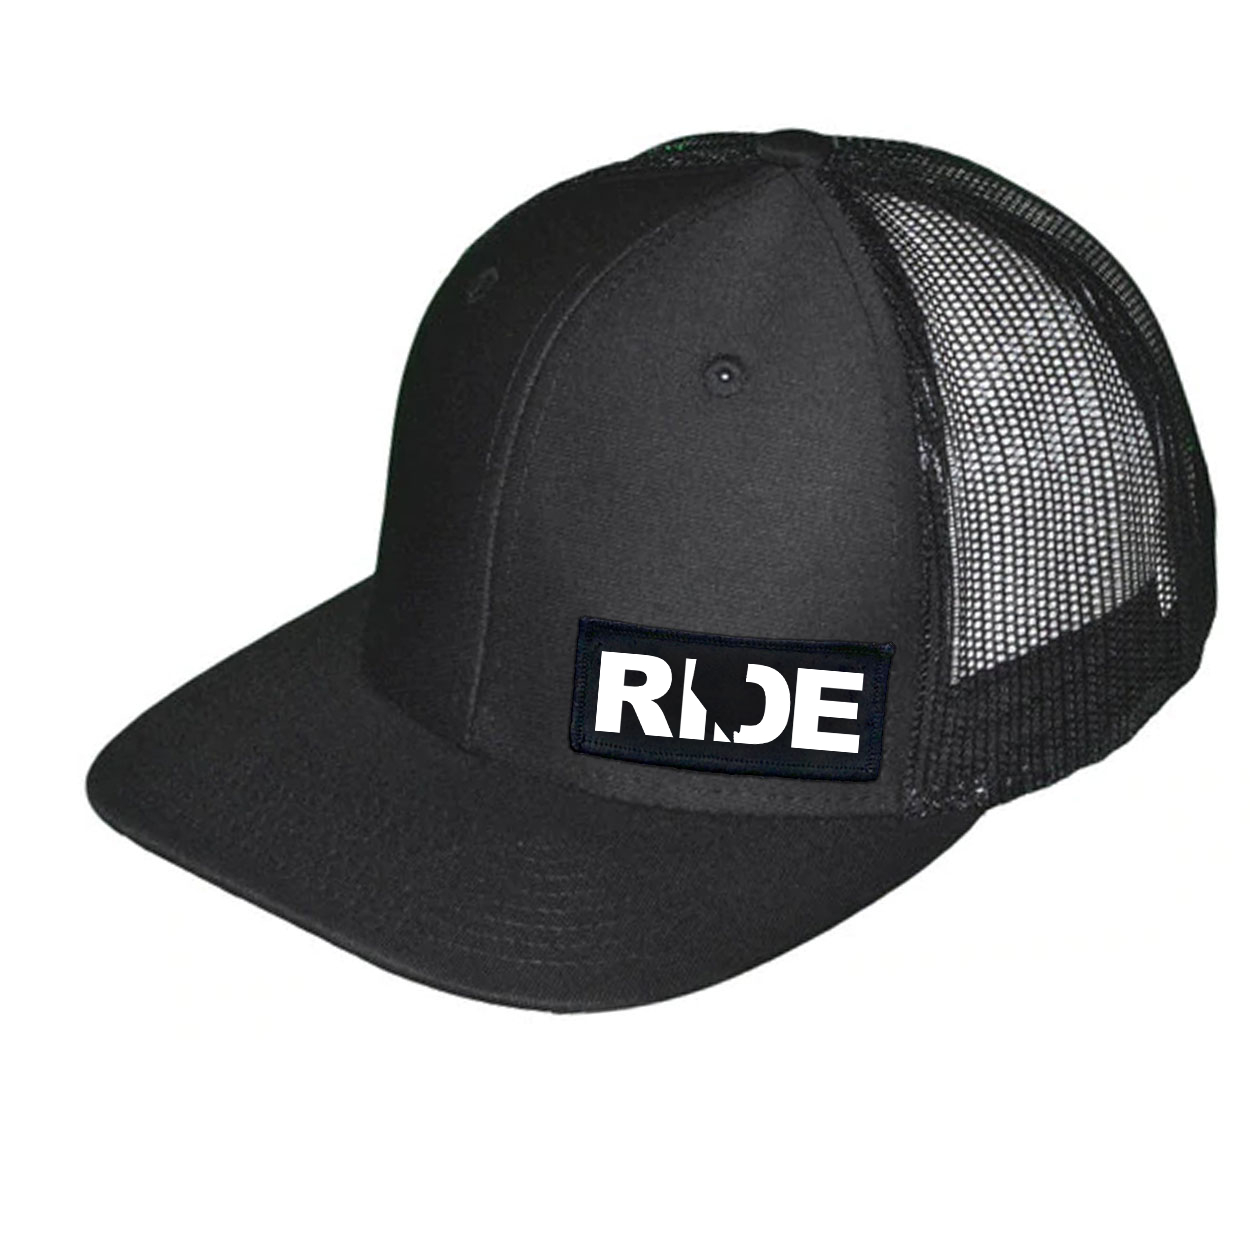 Ride Nevada Night Out Woven Patch Snapback Trucker Hat Black (White Logo)